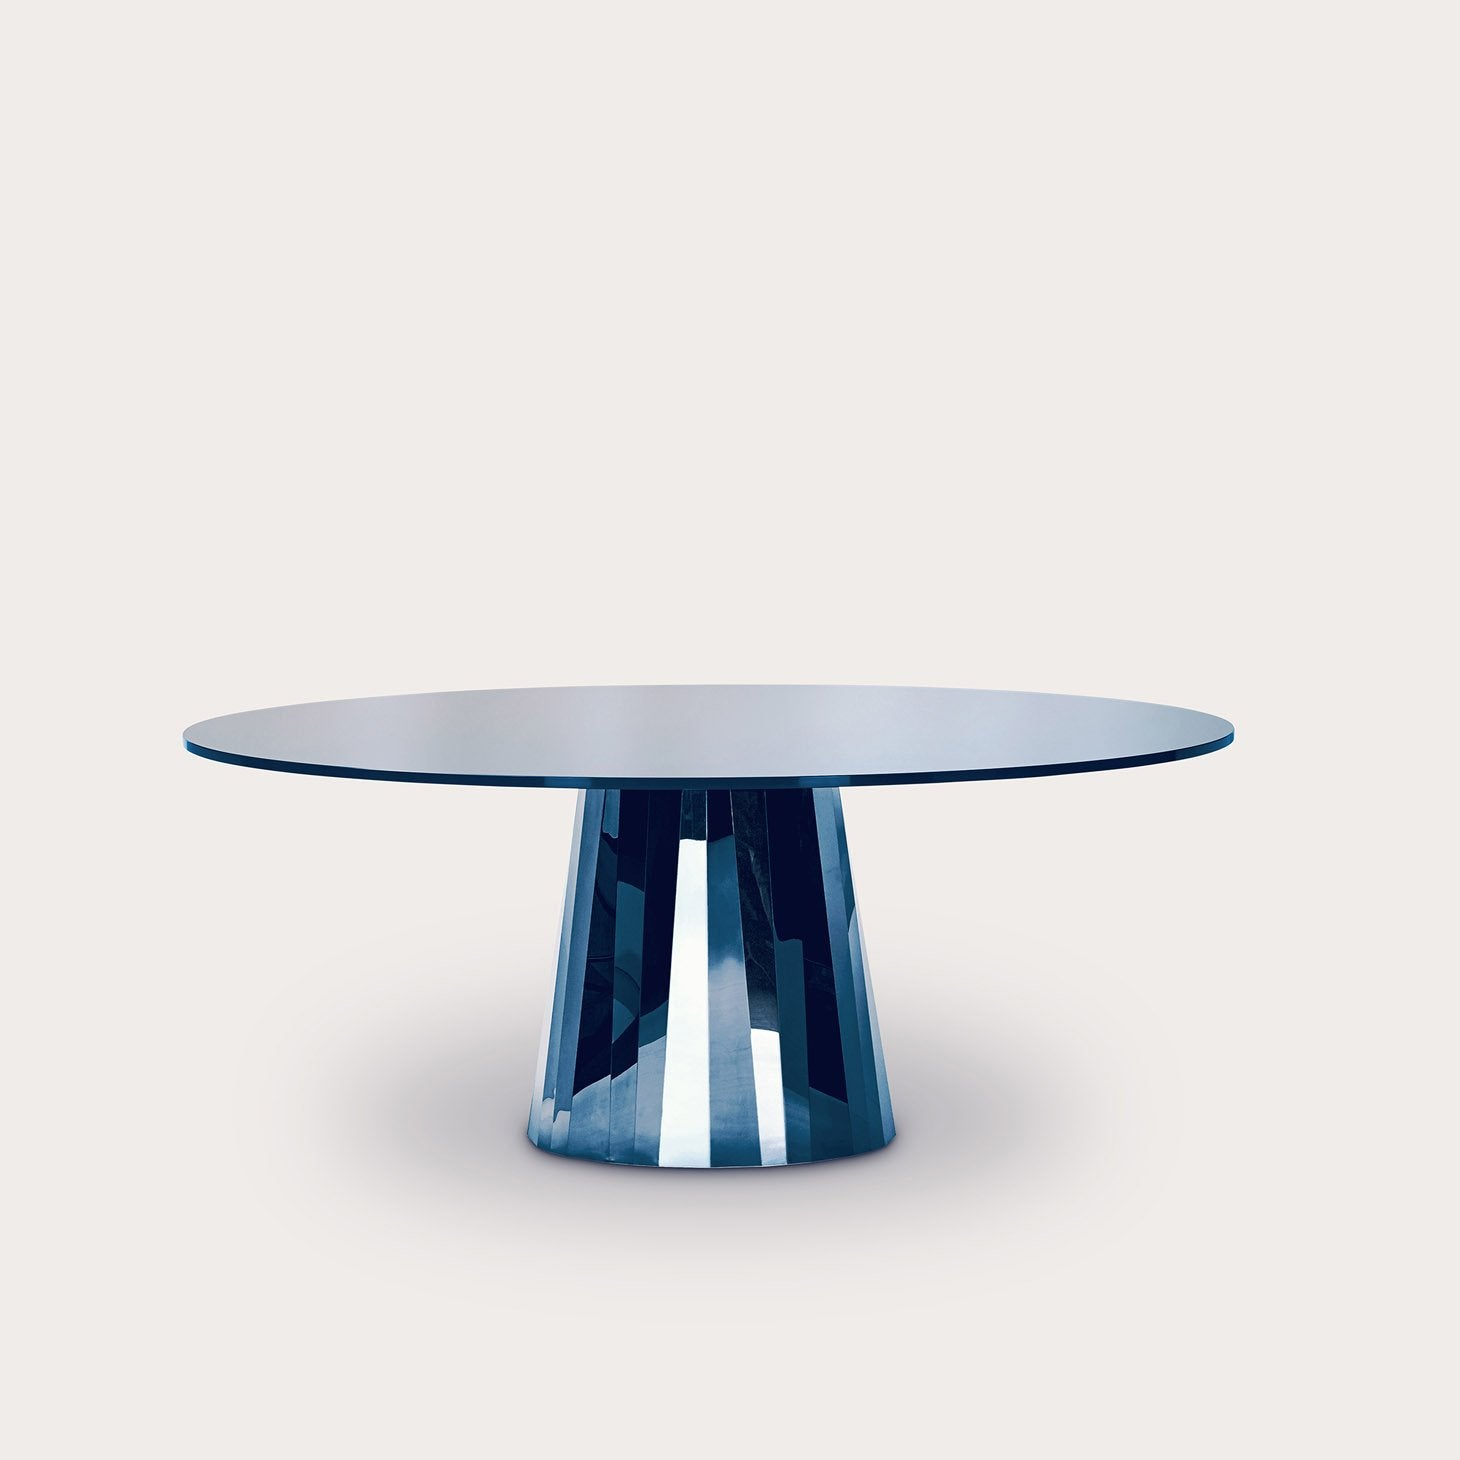 Pli Tables Victoria Wilmotte Designer Furniture Sku: 001-230-10265